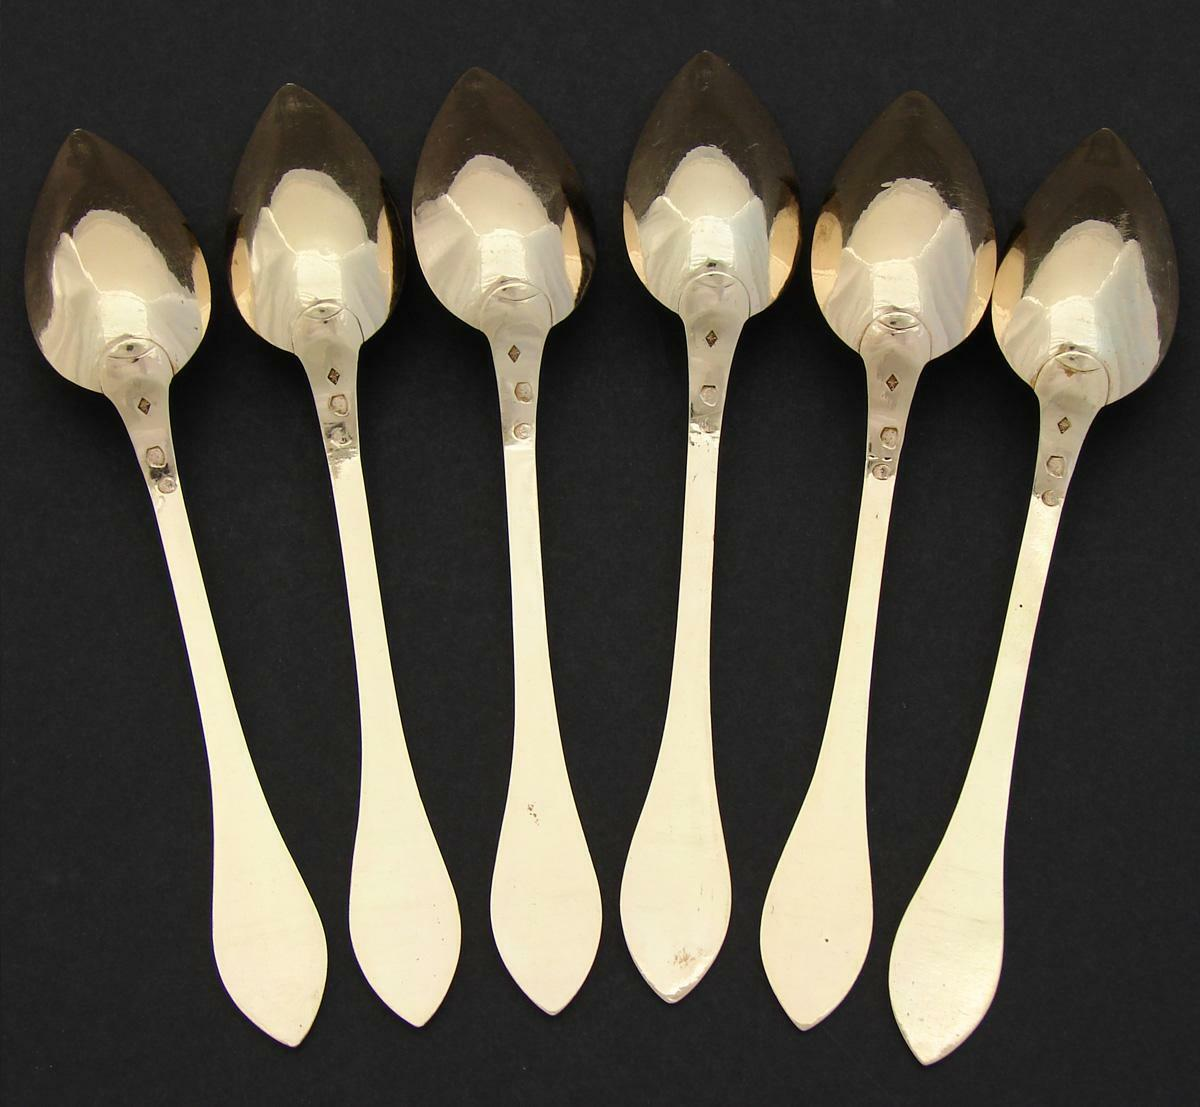 Antique French 1819-1838 Vermeil Silver 6pc Teaspoon Set, Winged Angel or Cherub